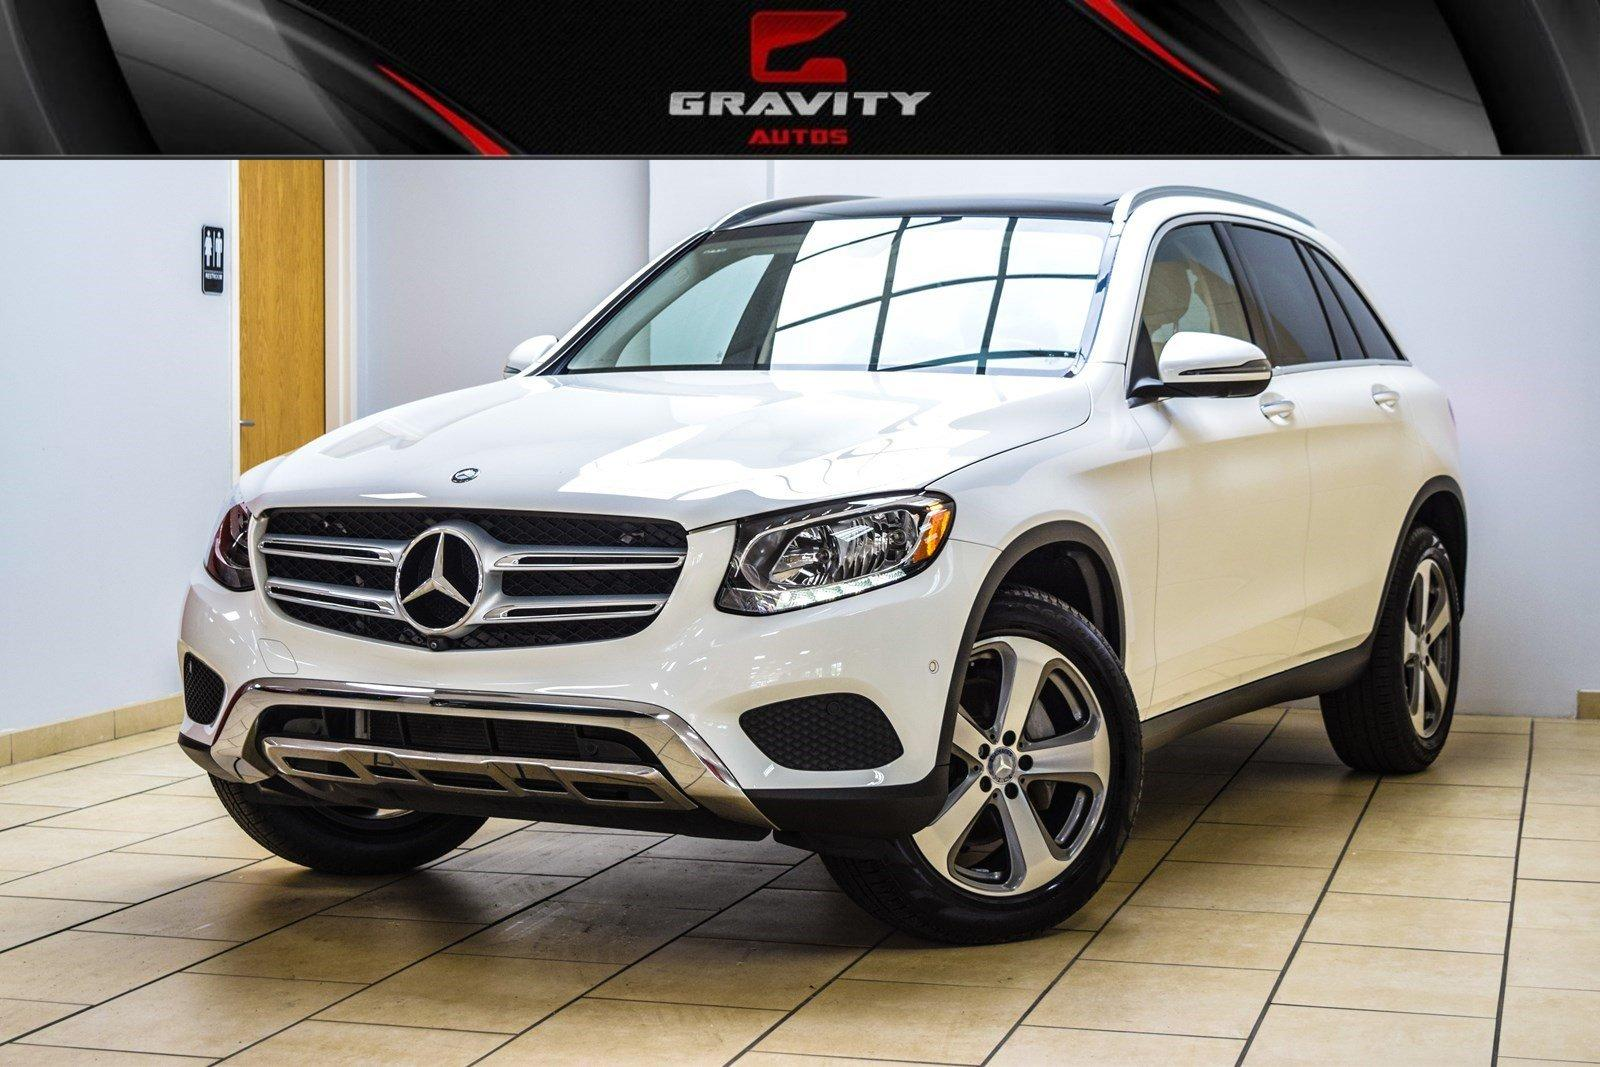 2016 mercedes benz glc glc 300 stock 037660 for sale near sandy springs ga ga mercedes benz. Black Bedroom Furniture Sets. Home Design Ideas